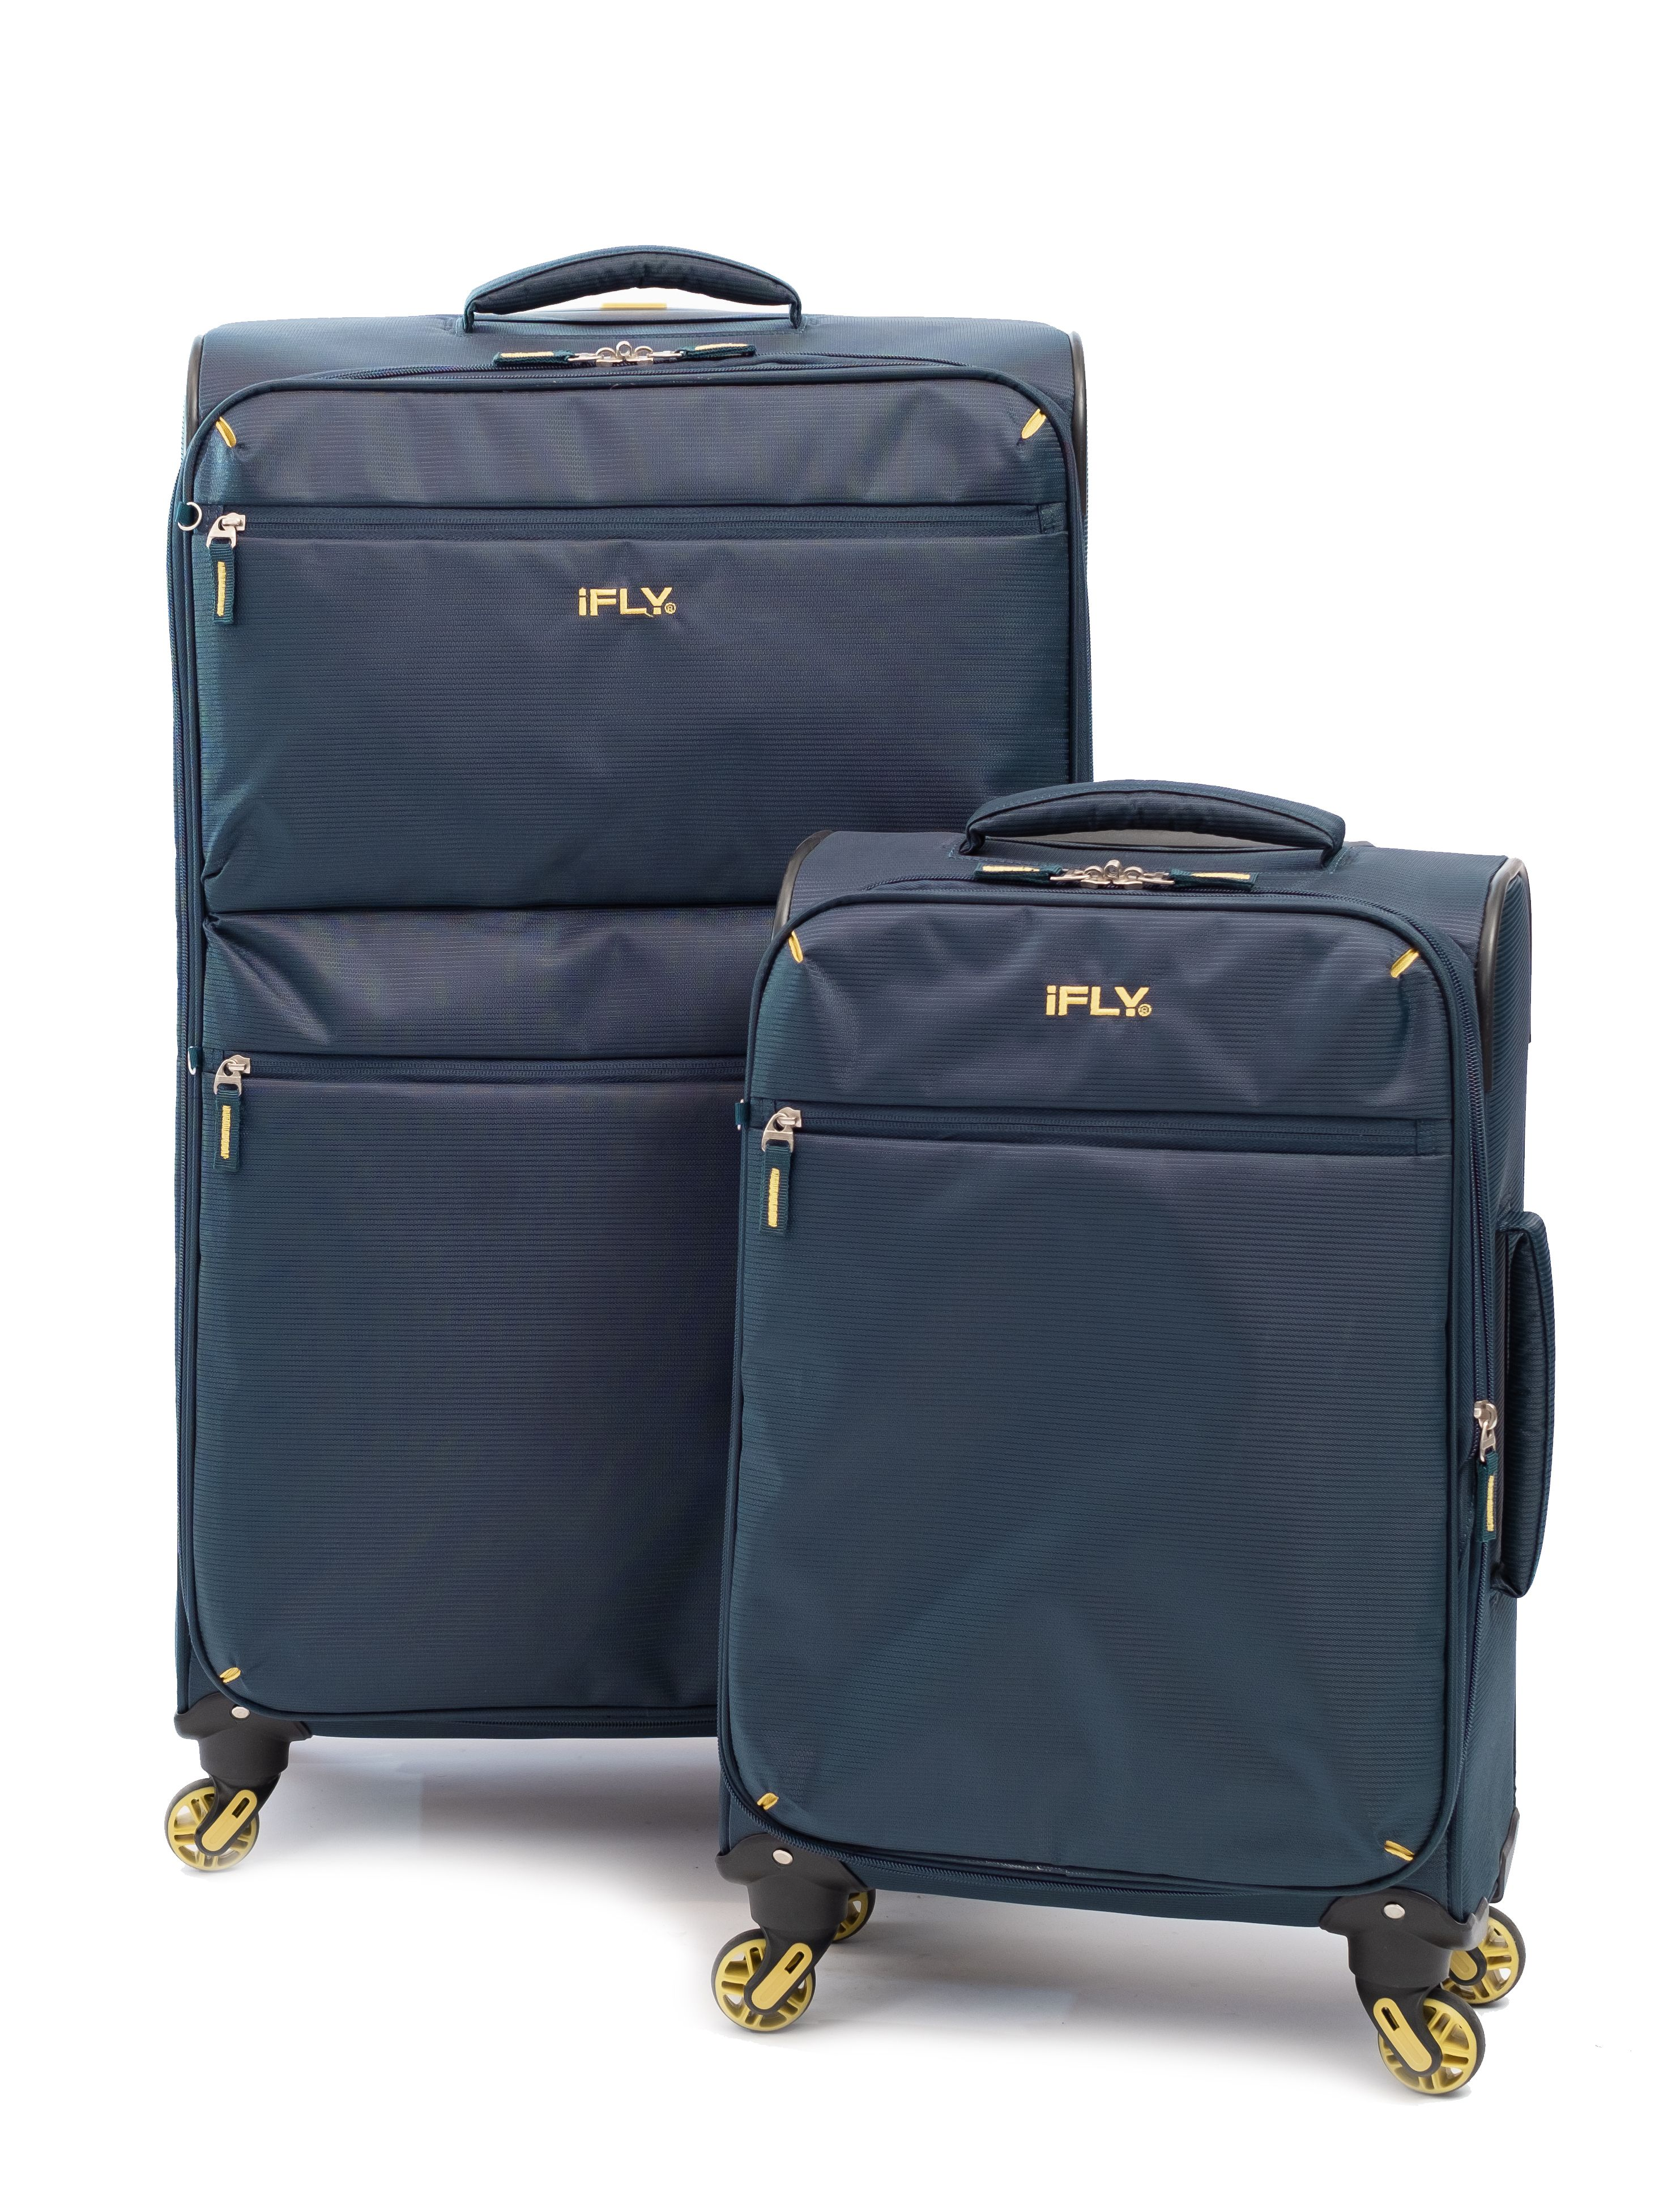 iFLY Soft Sided Luggage Ez Glider 2 pcs set, Navy